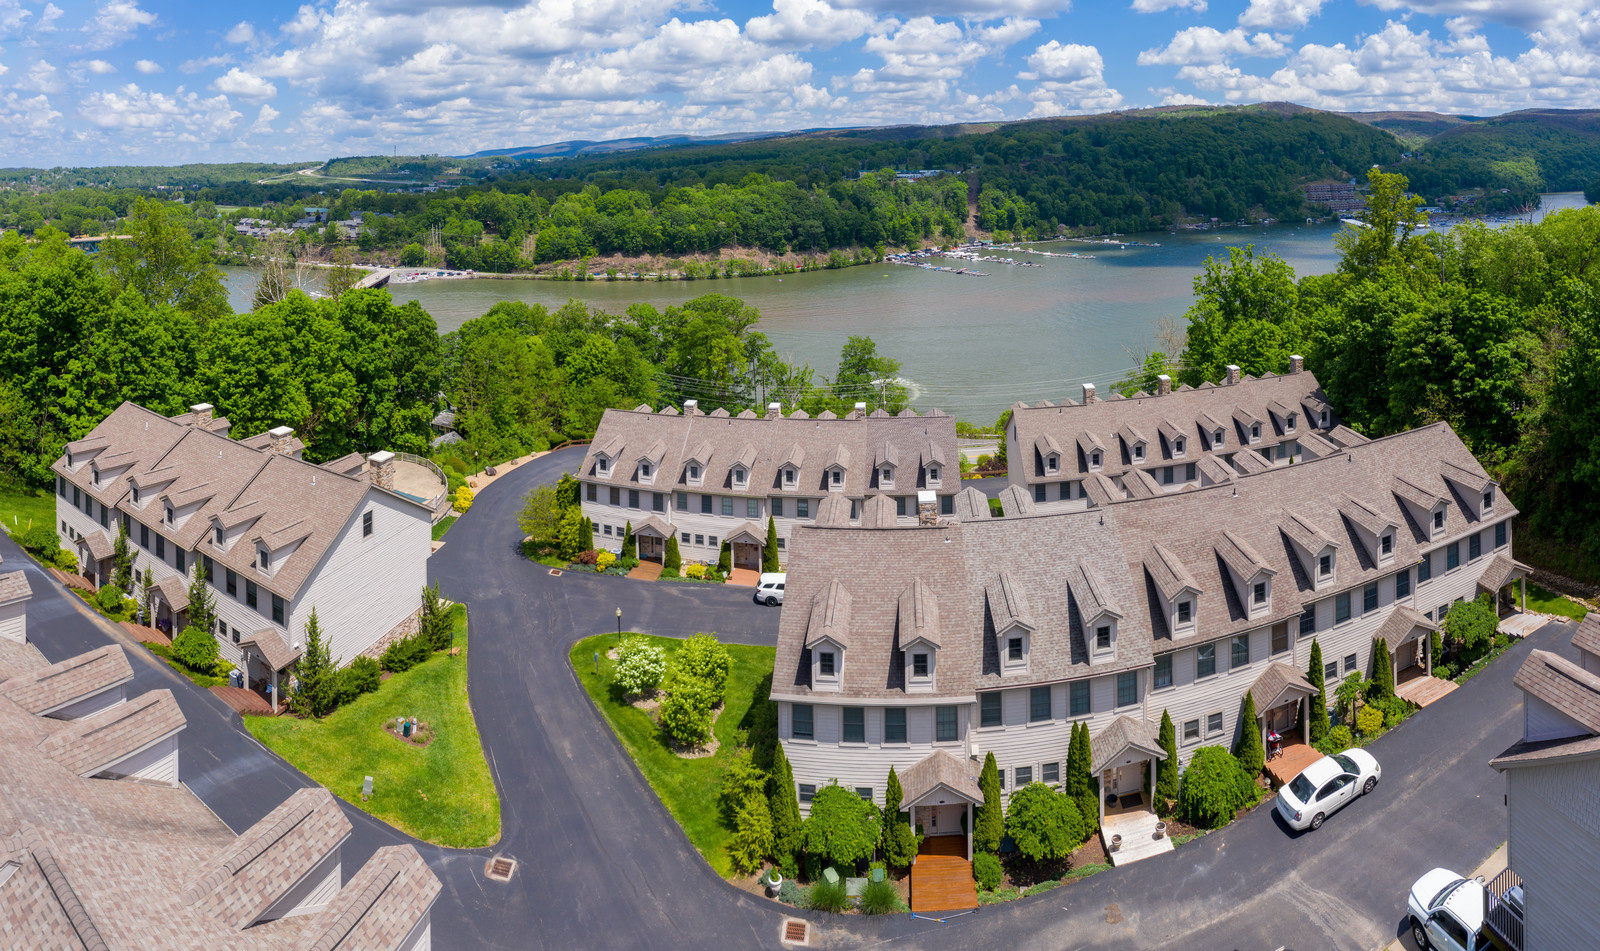 Arial view of townhouses along Cheat Lake on a sunnday with blue skies